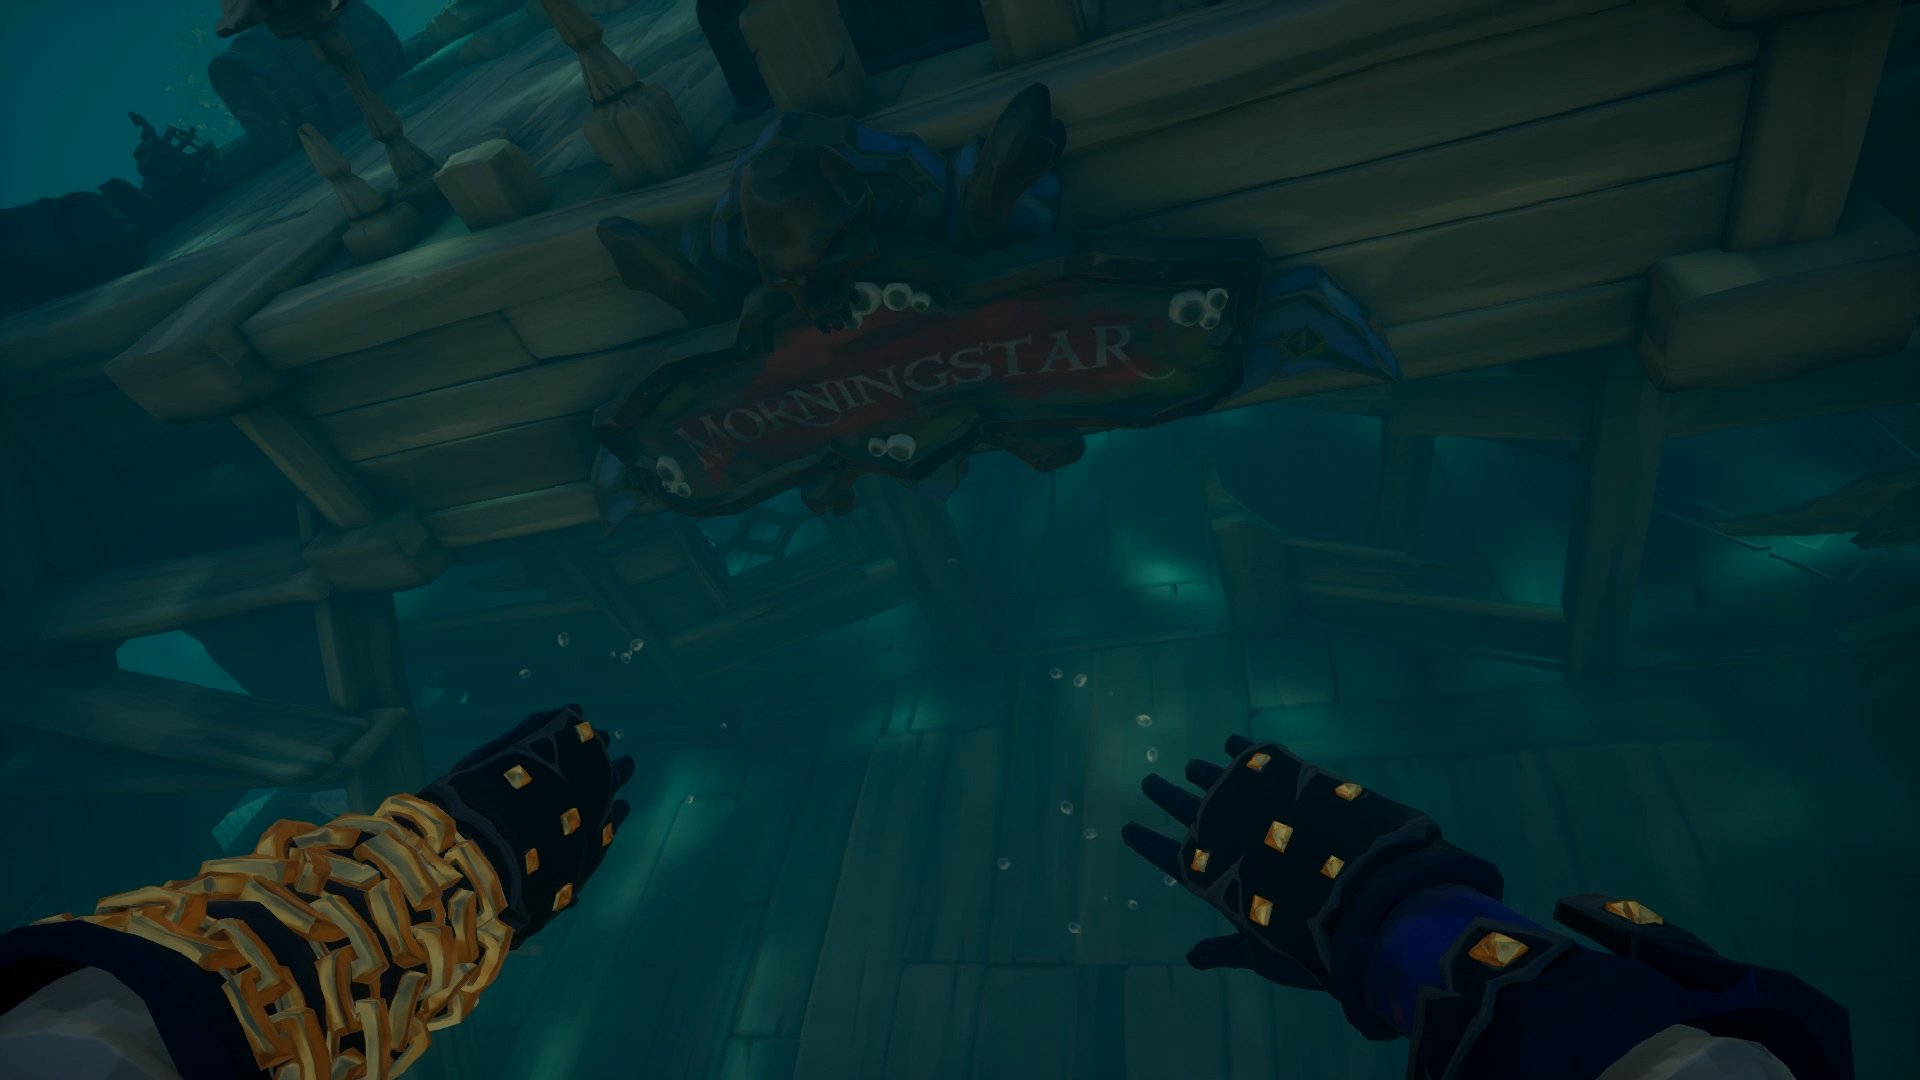 Sea of Thieves Morningstar shipwreck